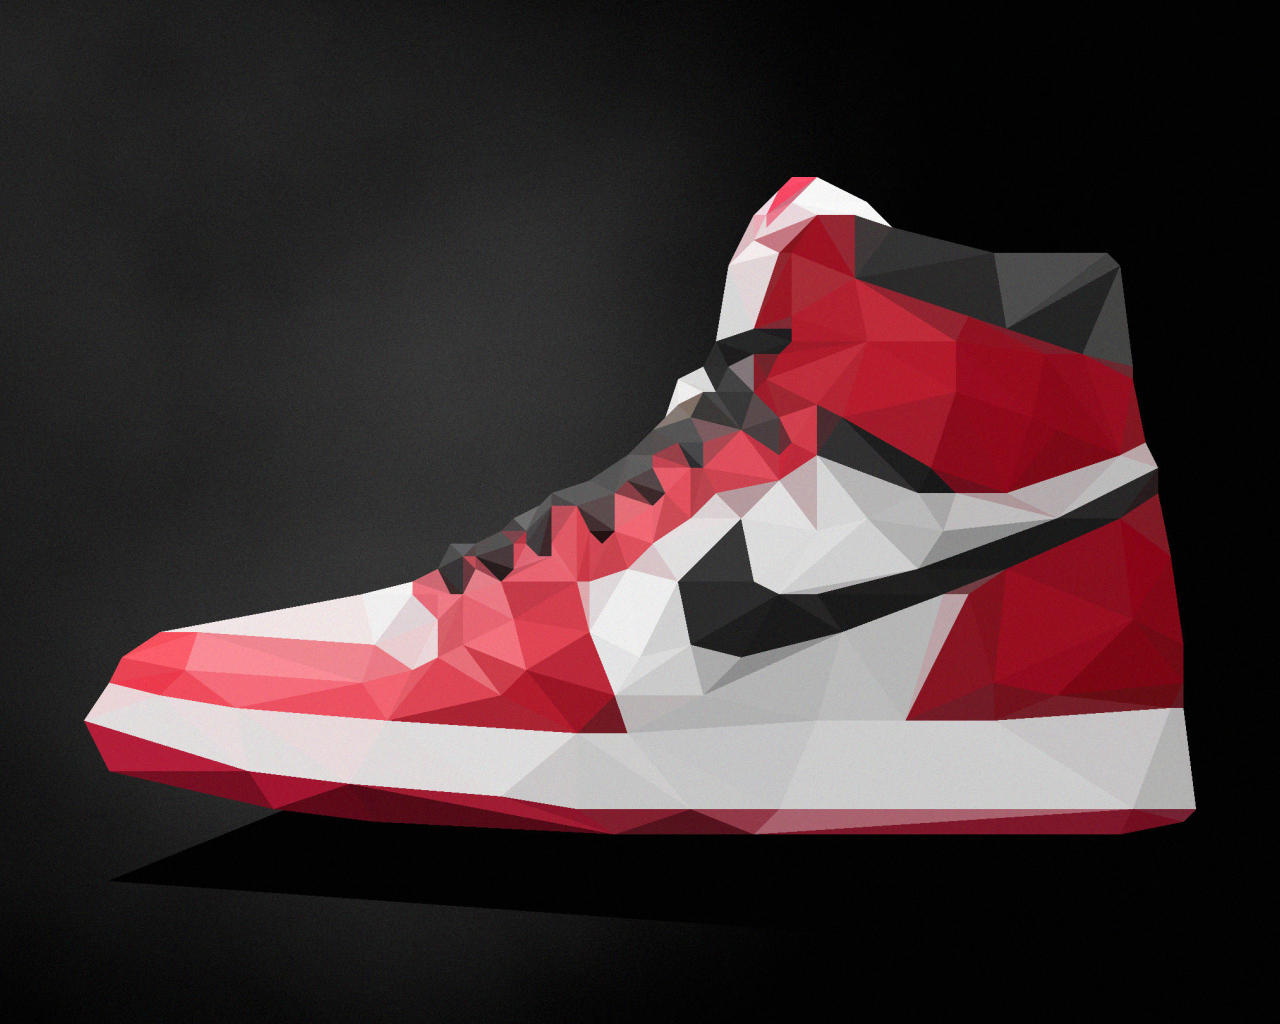 Free Download Low Poly Jordan 1 Wallpaper Sneakers 2880x1620 For Your Desktop Mobile Tablet Explore 34 Jordan 1 Wallpapers Jordan 1 Wallpapers Travis Scott Jordan 1 Wallpapers 9 1 1 Wallpapers